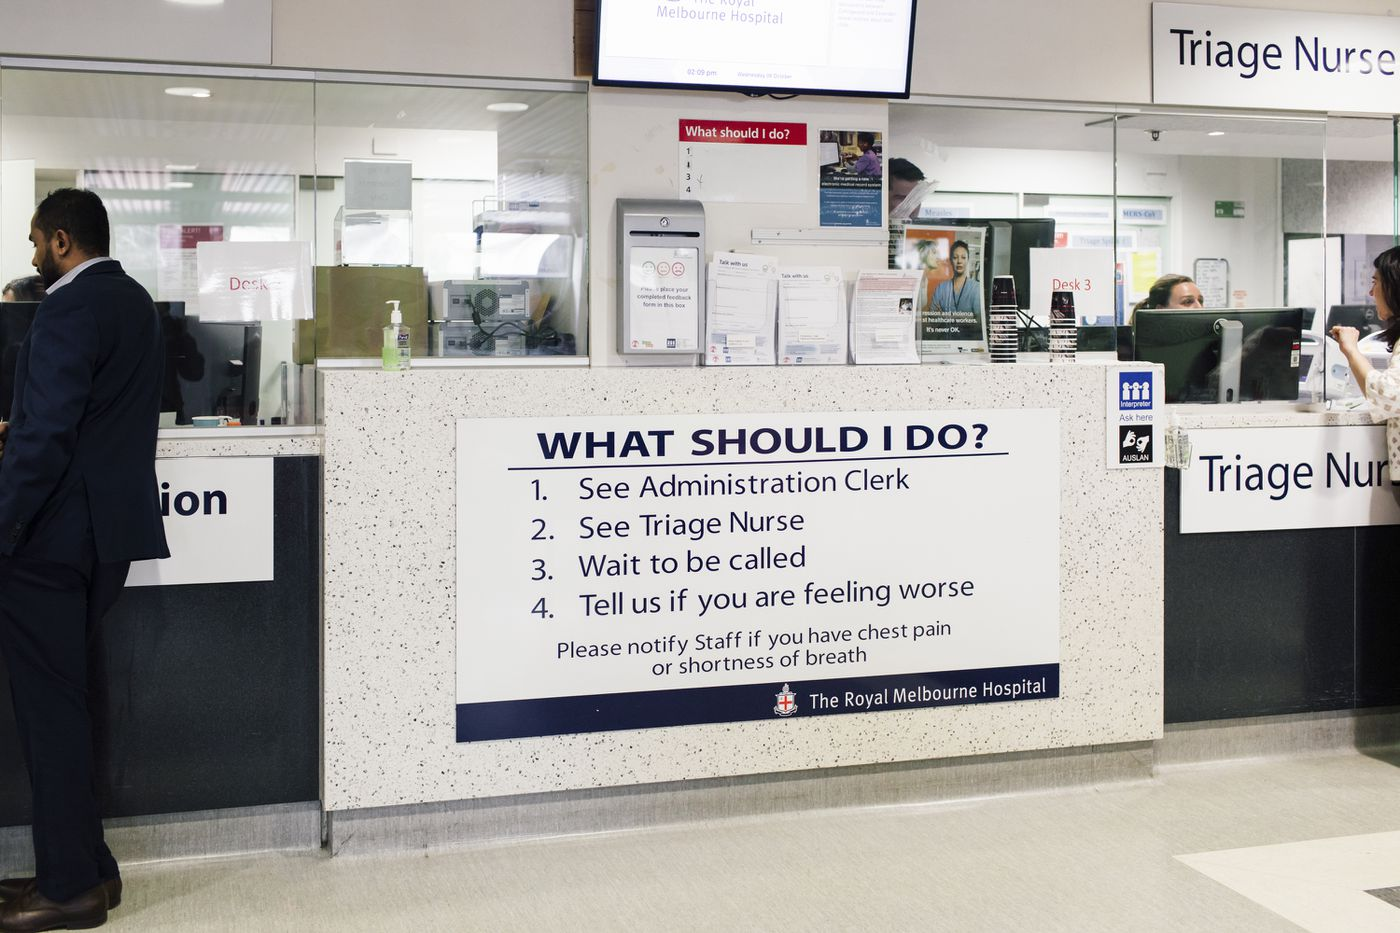 Australia Built A Hybrid Public Private Health System Here S How It Works Vox